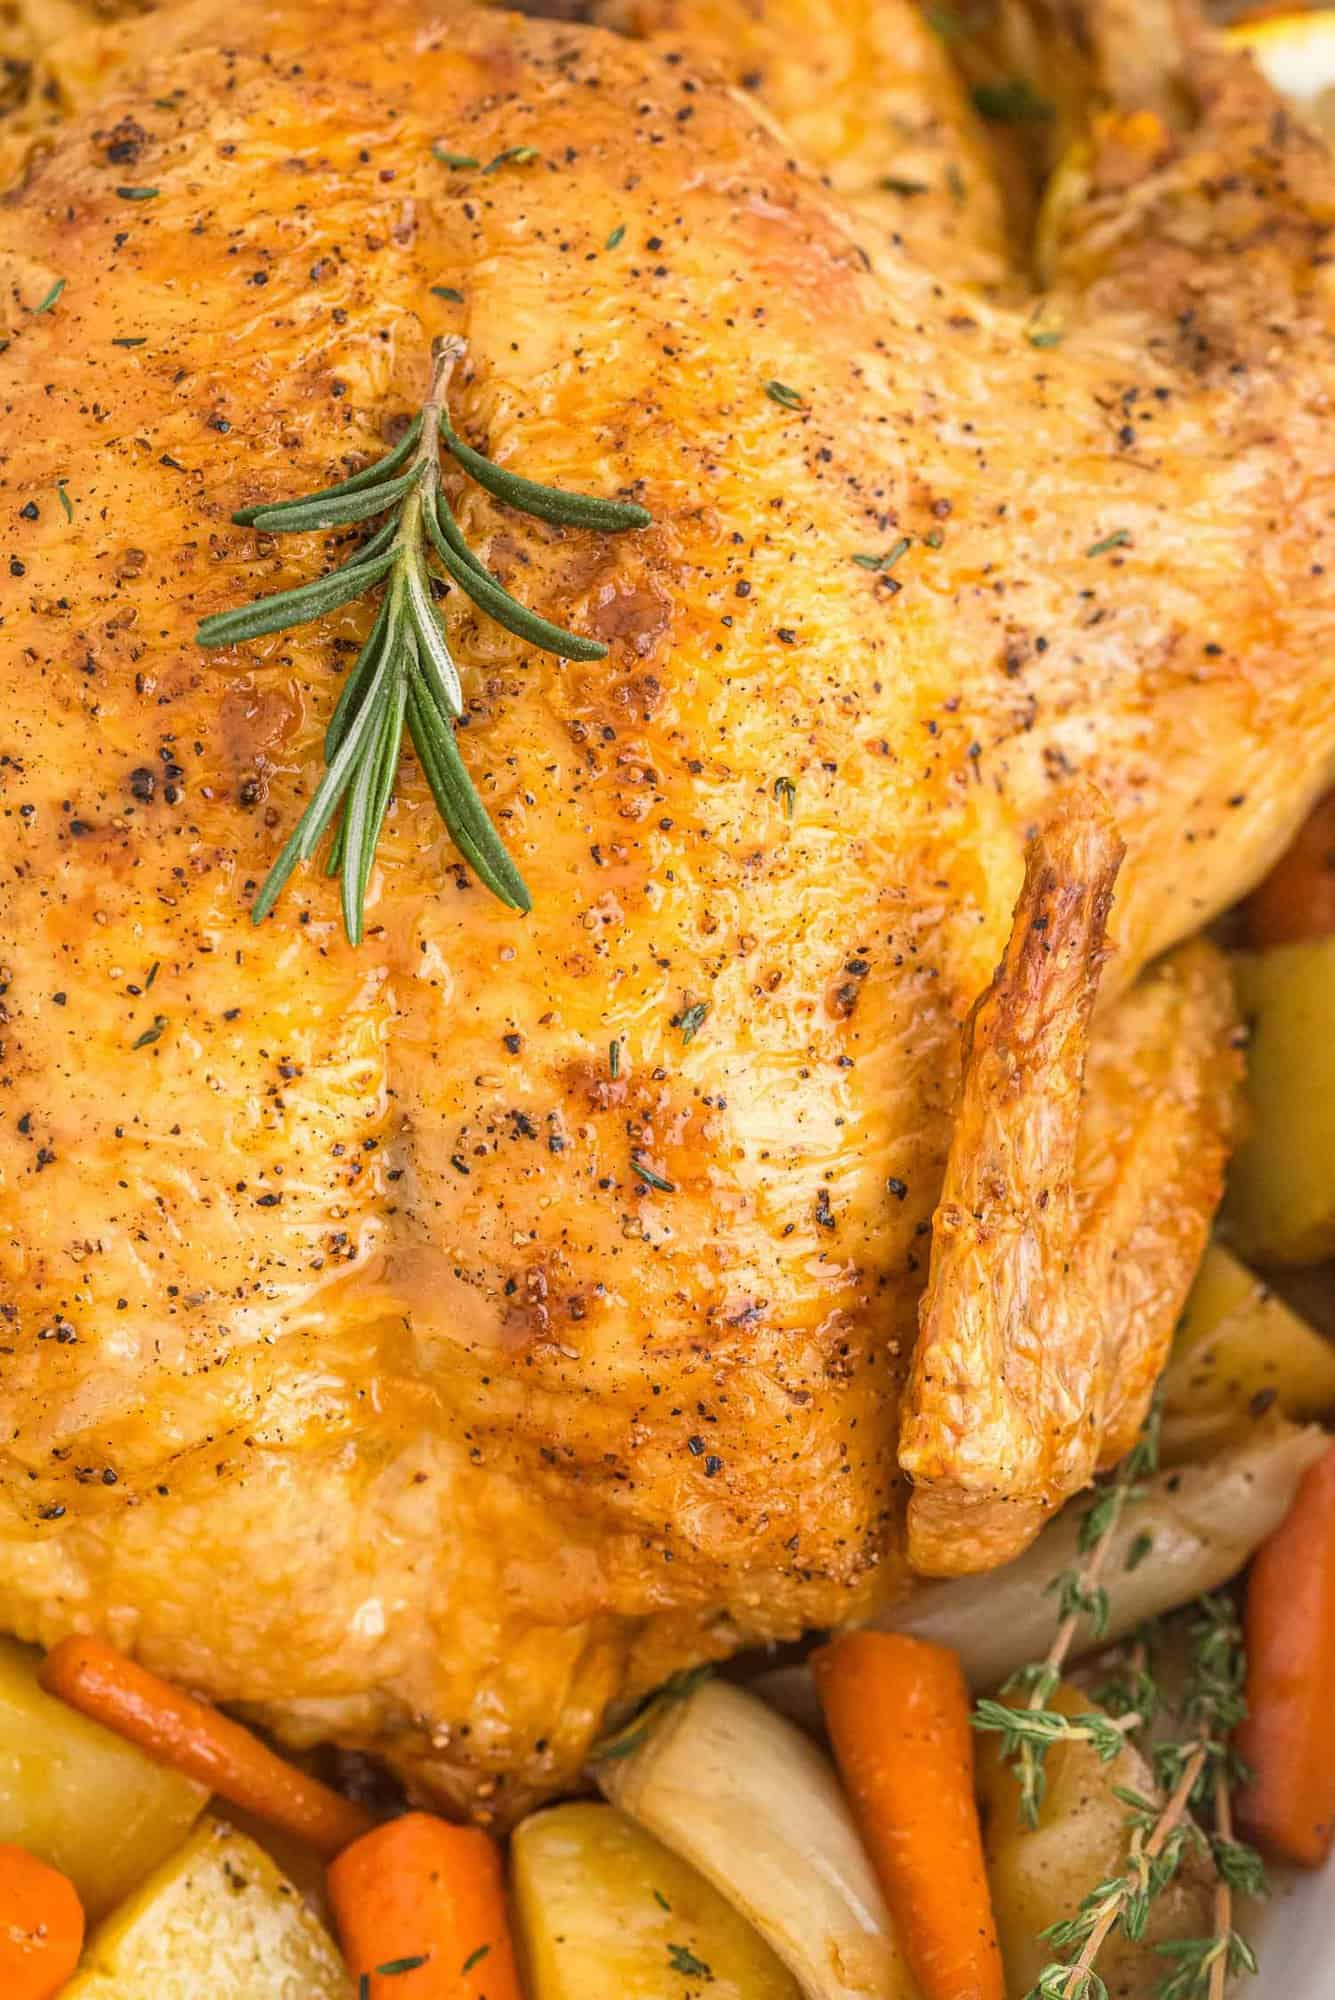 Super close up view of roasted chicken, vegetables, and potatoes.